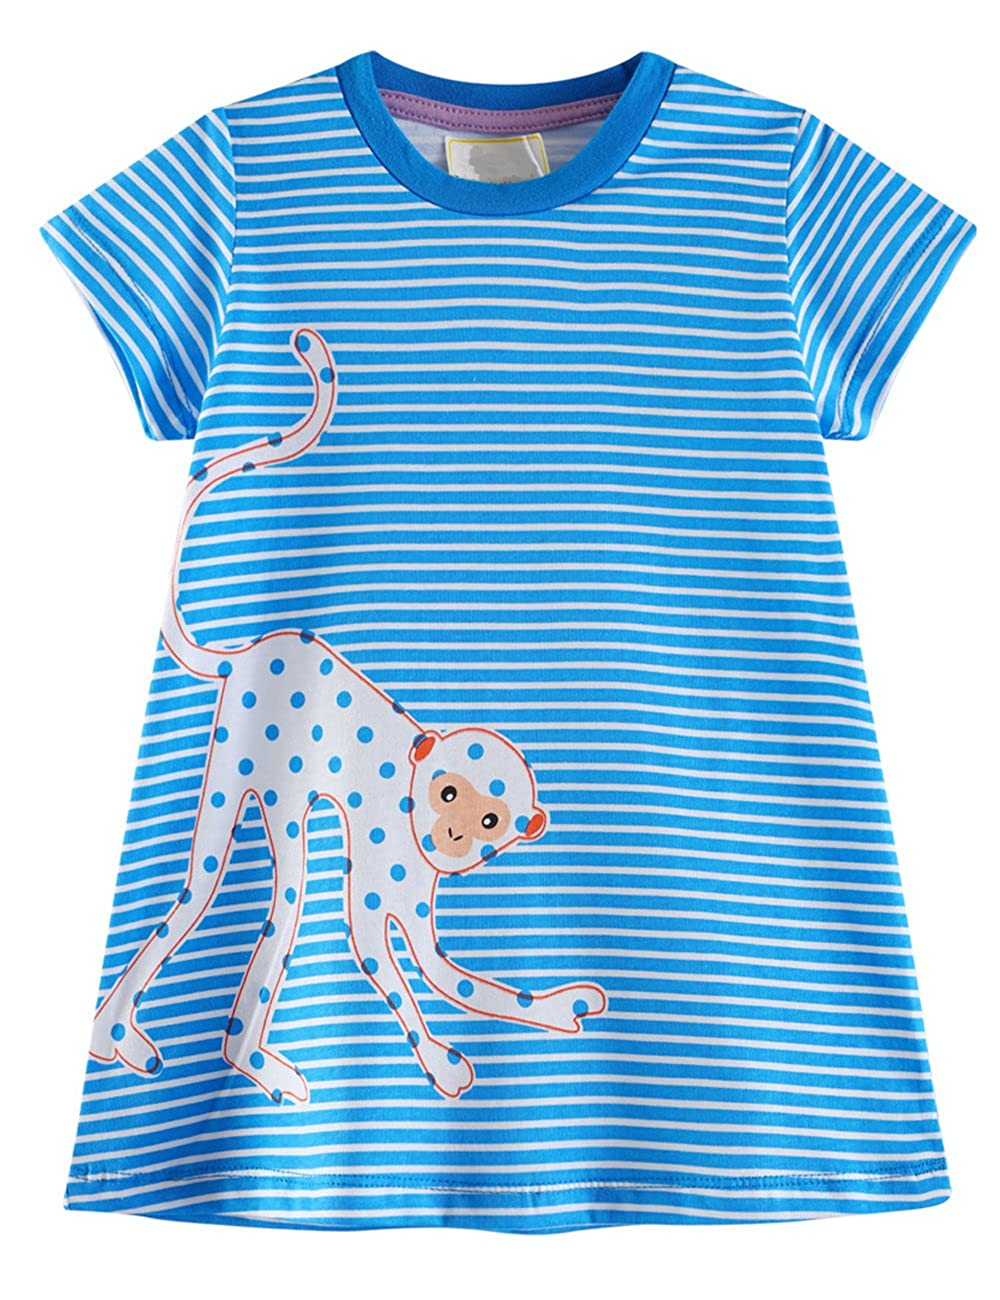 4723fbfda 100% cotton material ensure your girls feel cool, comfortable and  breathable in summer. Adorable design for girls 1-6 year. Cute pattern dress  make your ...